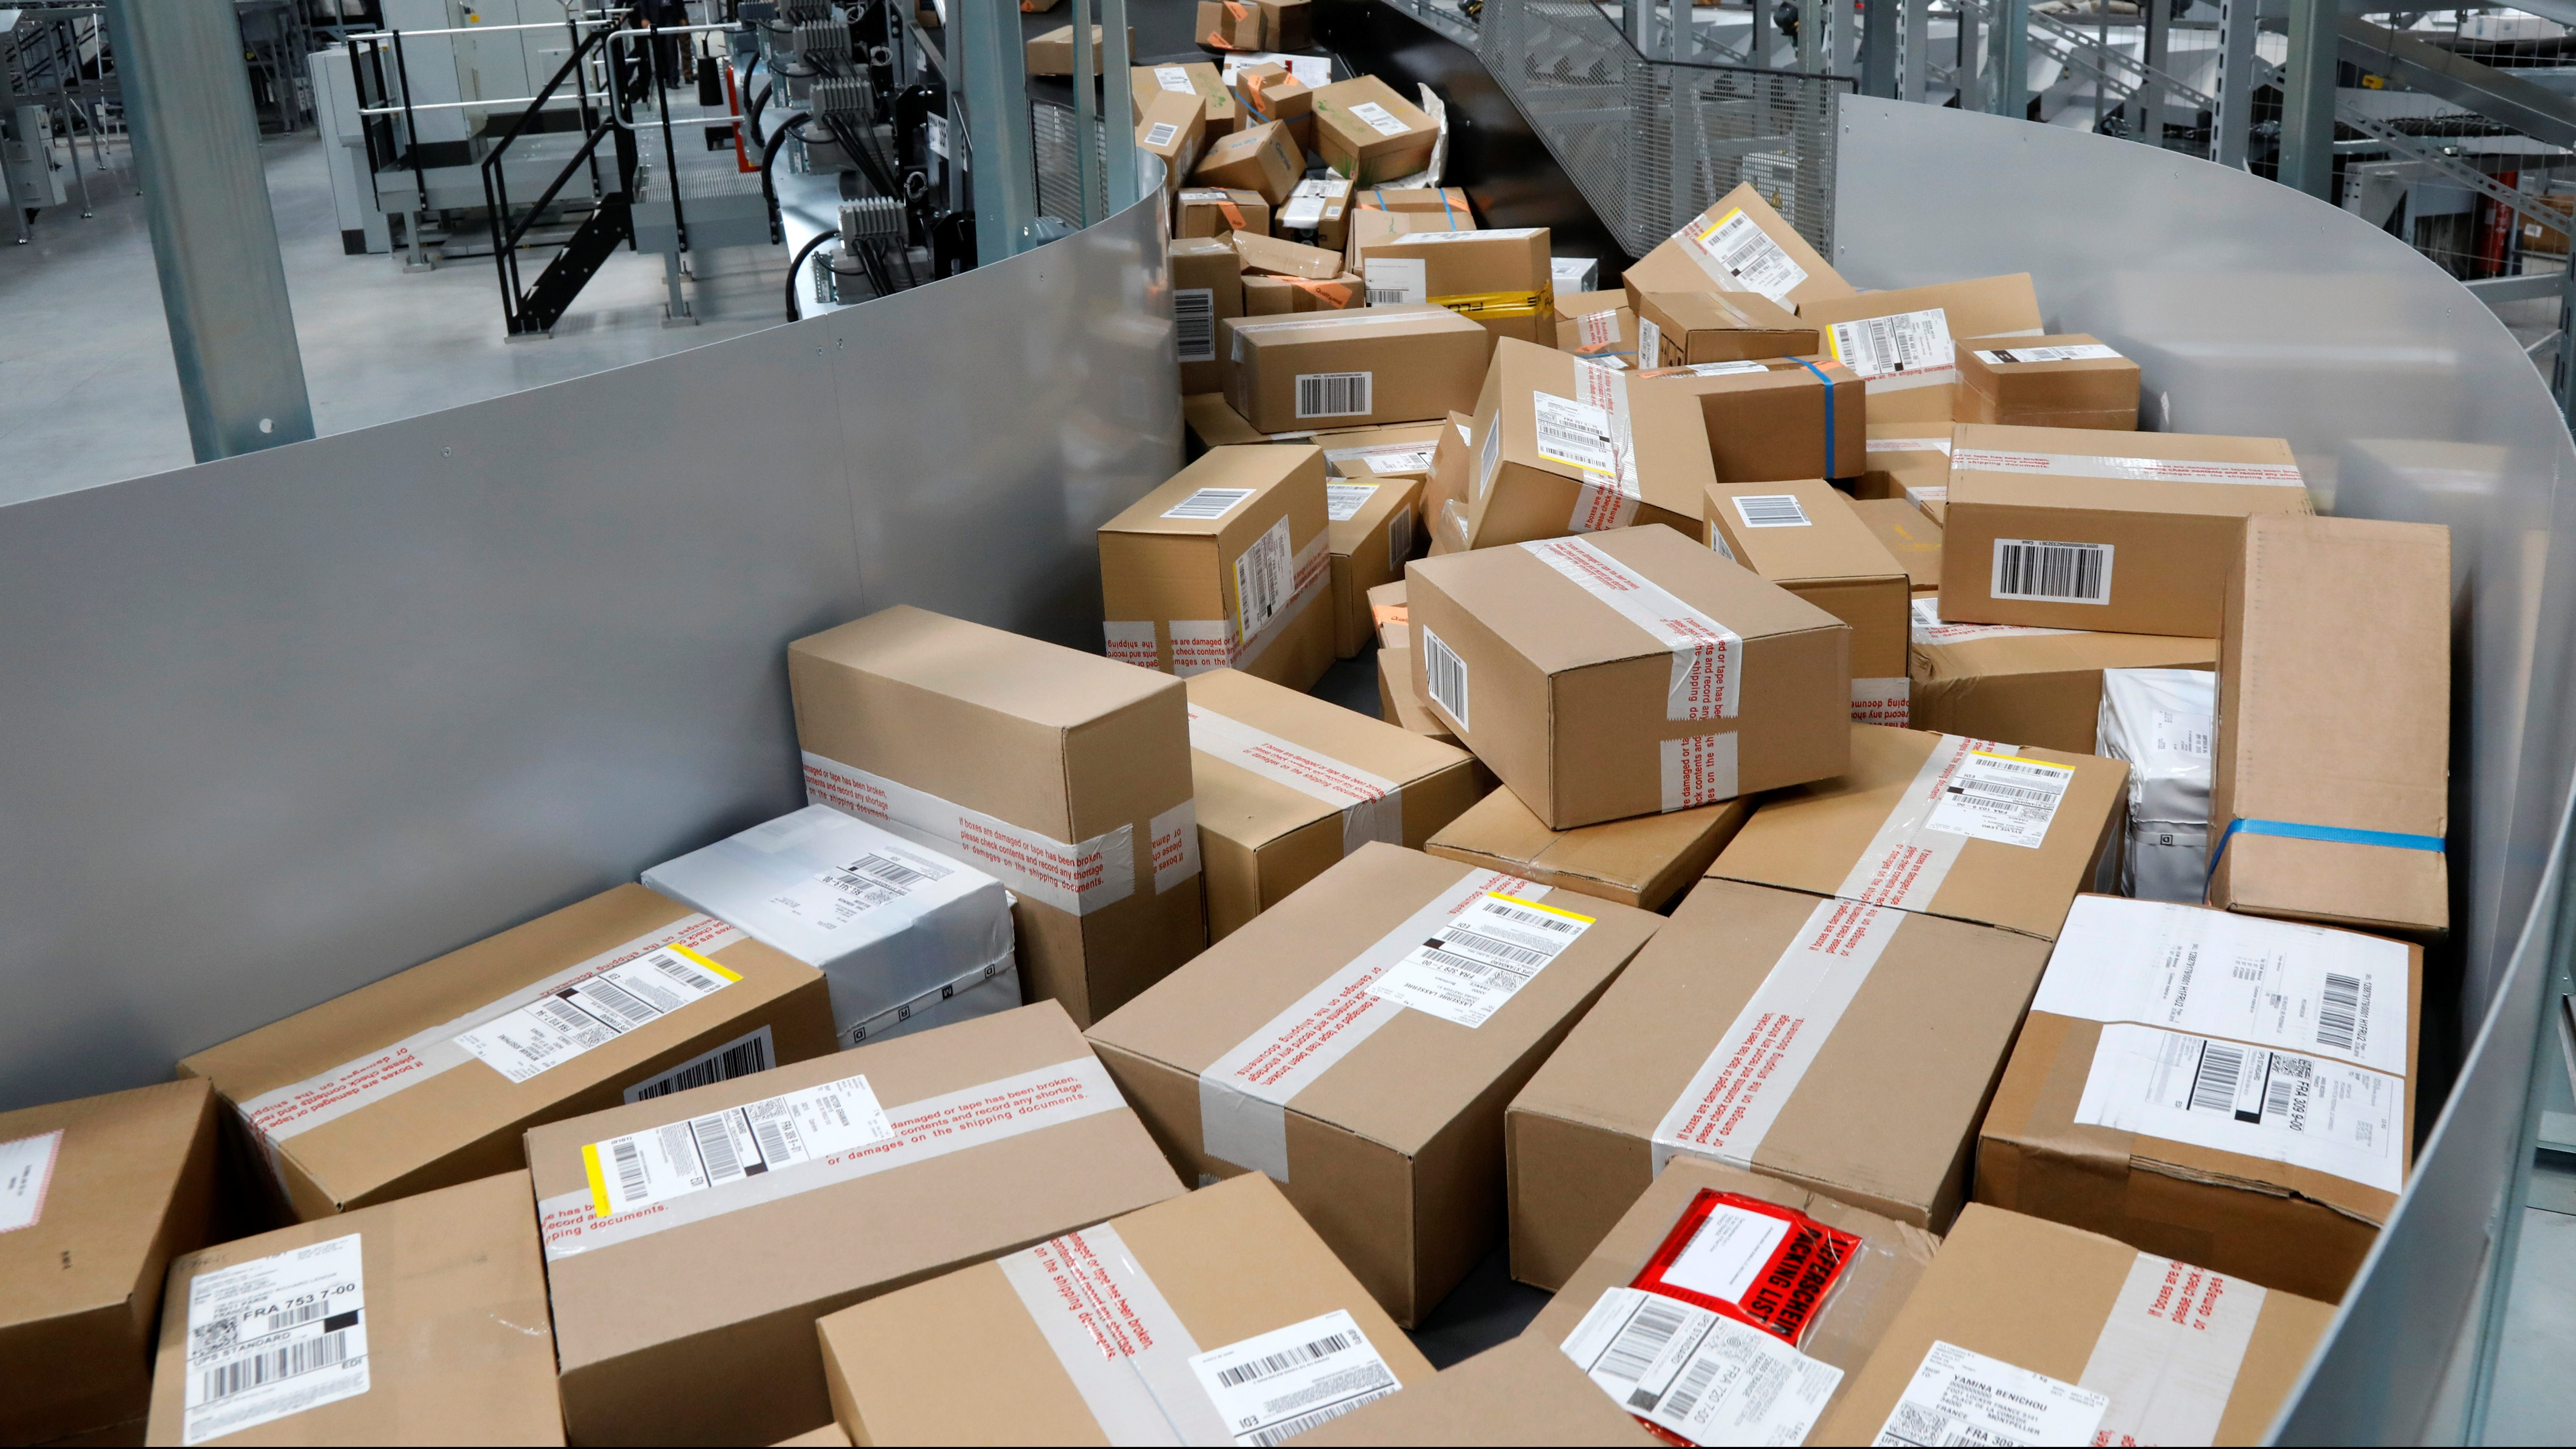 Packages are seen at the package sorting and delivery UPS (United Parcel Service) hub in Corbeil-Essonnes and Evry, southern Paris, France